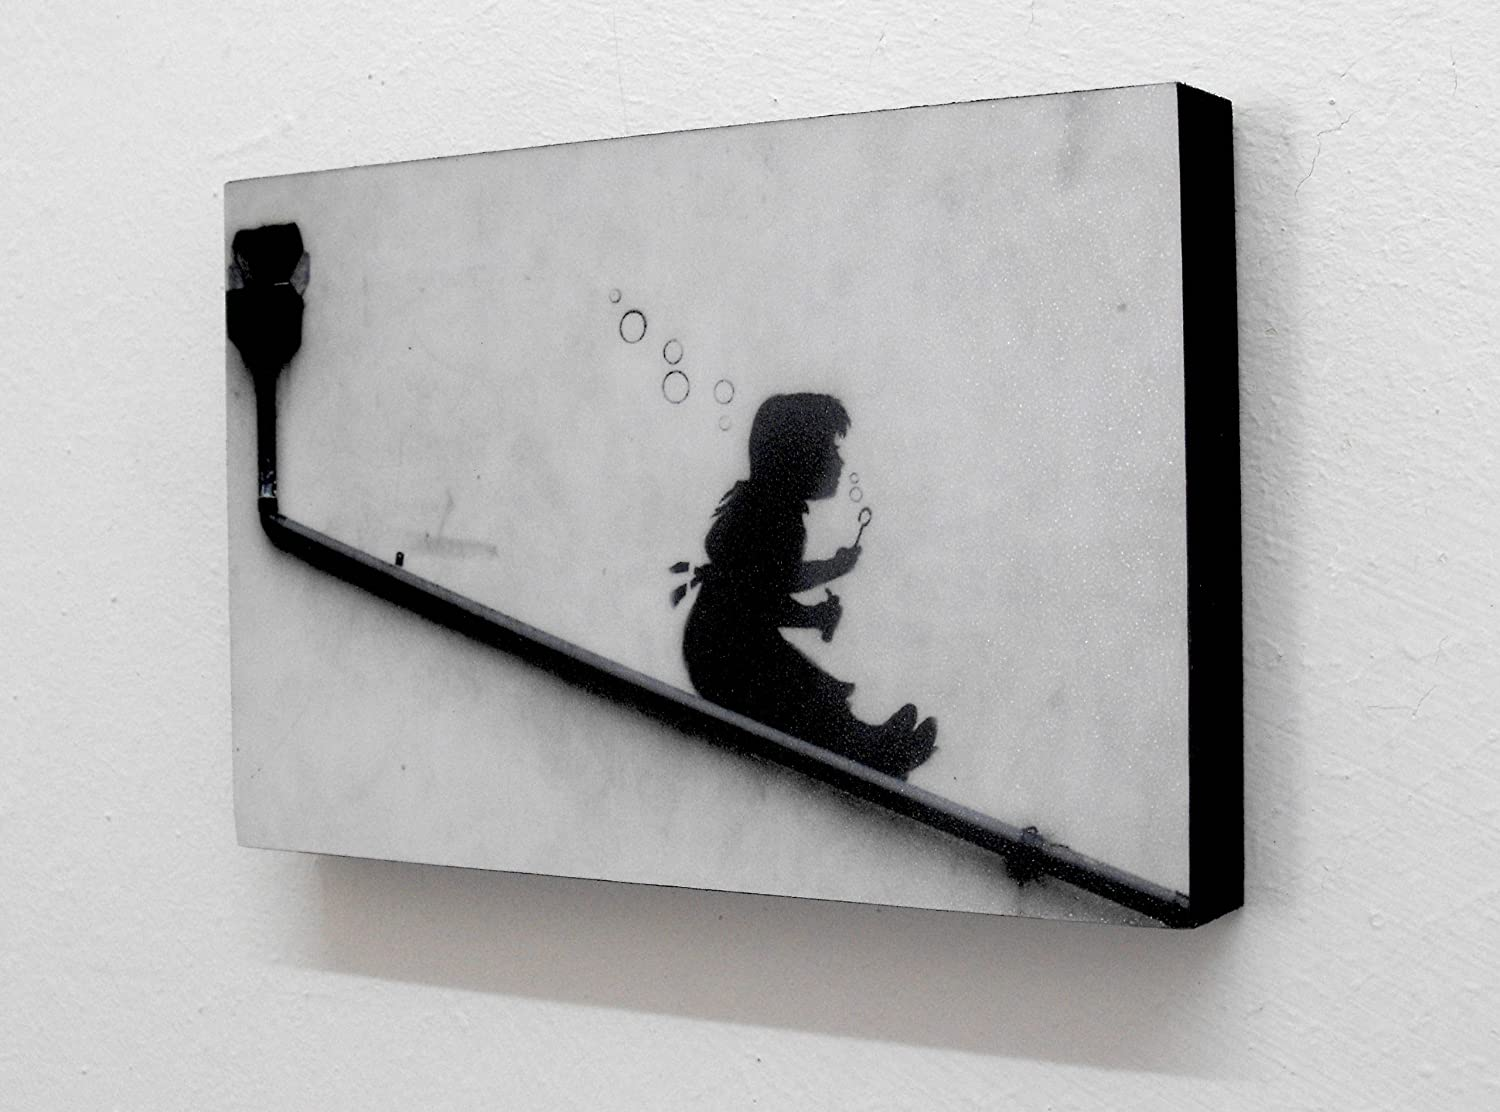 Banksy Bubble Girl Drainpipe Graffiti 6